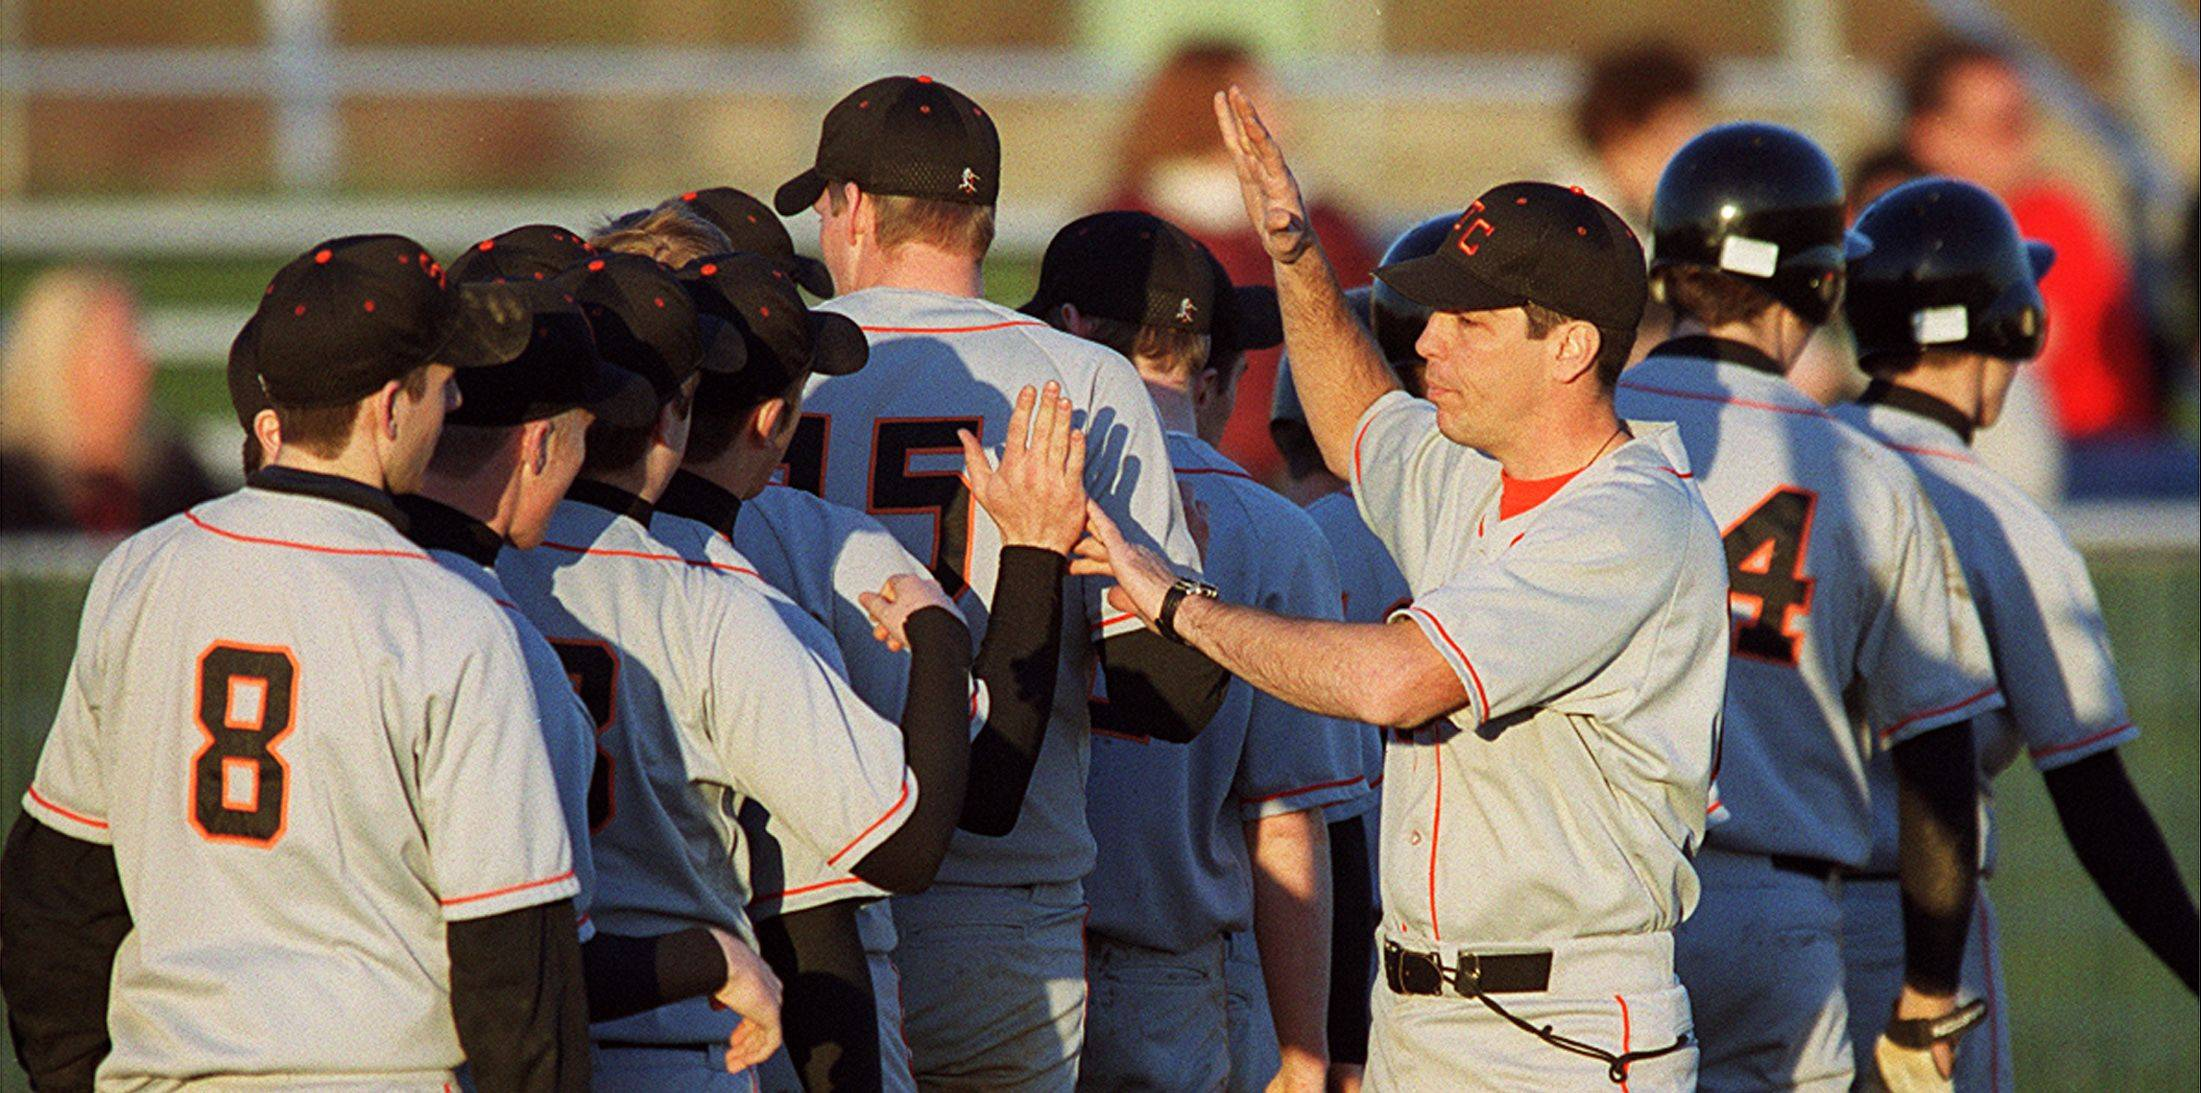 Len Asquini, who guided the Saints to the 1999 state championship, is returning to coach the baseball team at St. Charles East.